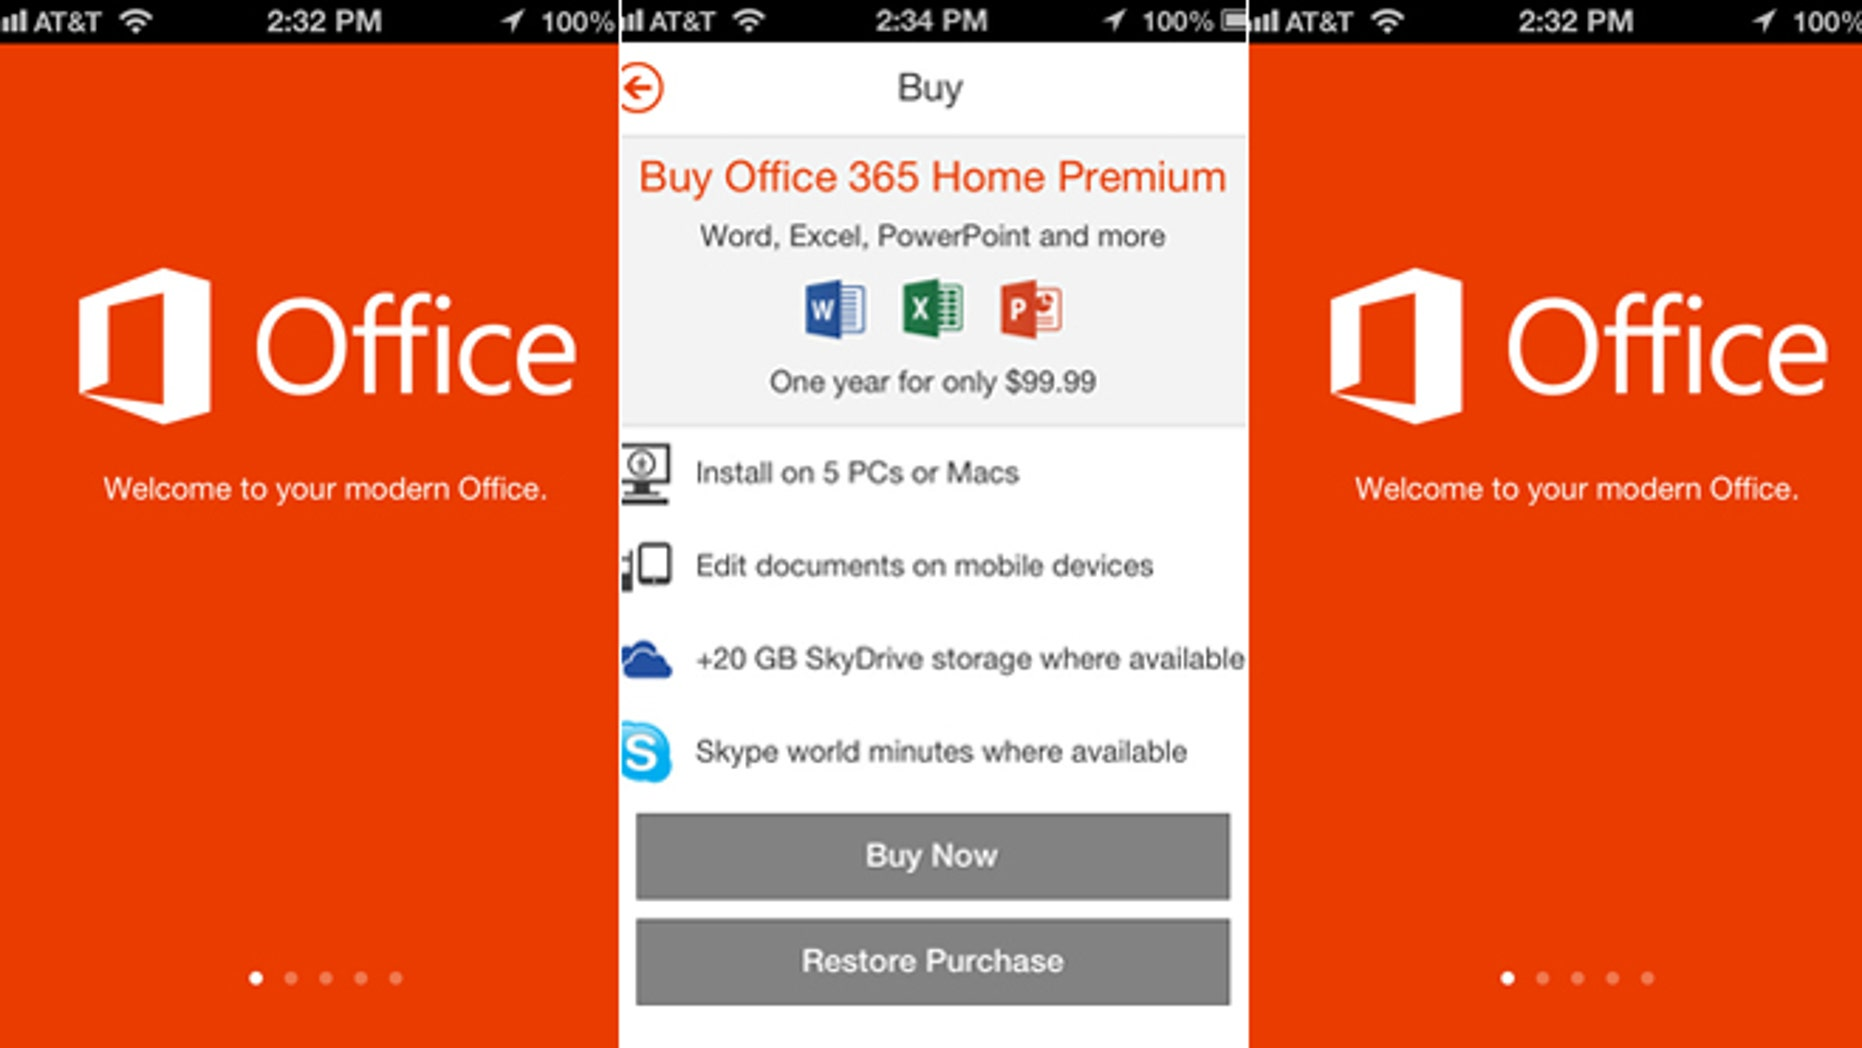 Microsoft's Office for iPhone offers the ability to read and edit text documents, spreadsheets and slide presentations on a phone. The company isn't making an iPad version, though, nor is it offering the app on Android devices.